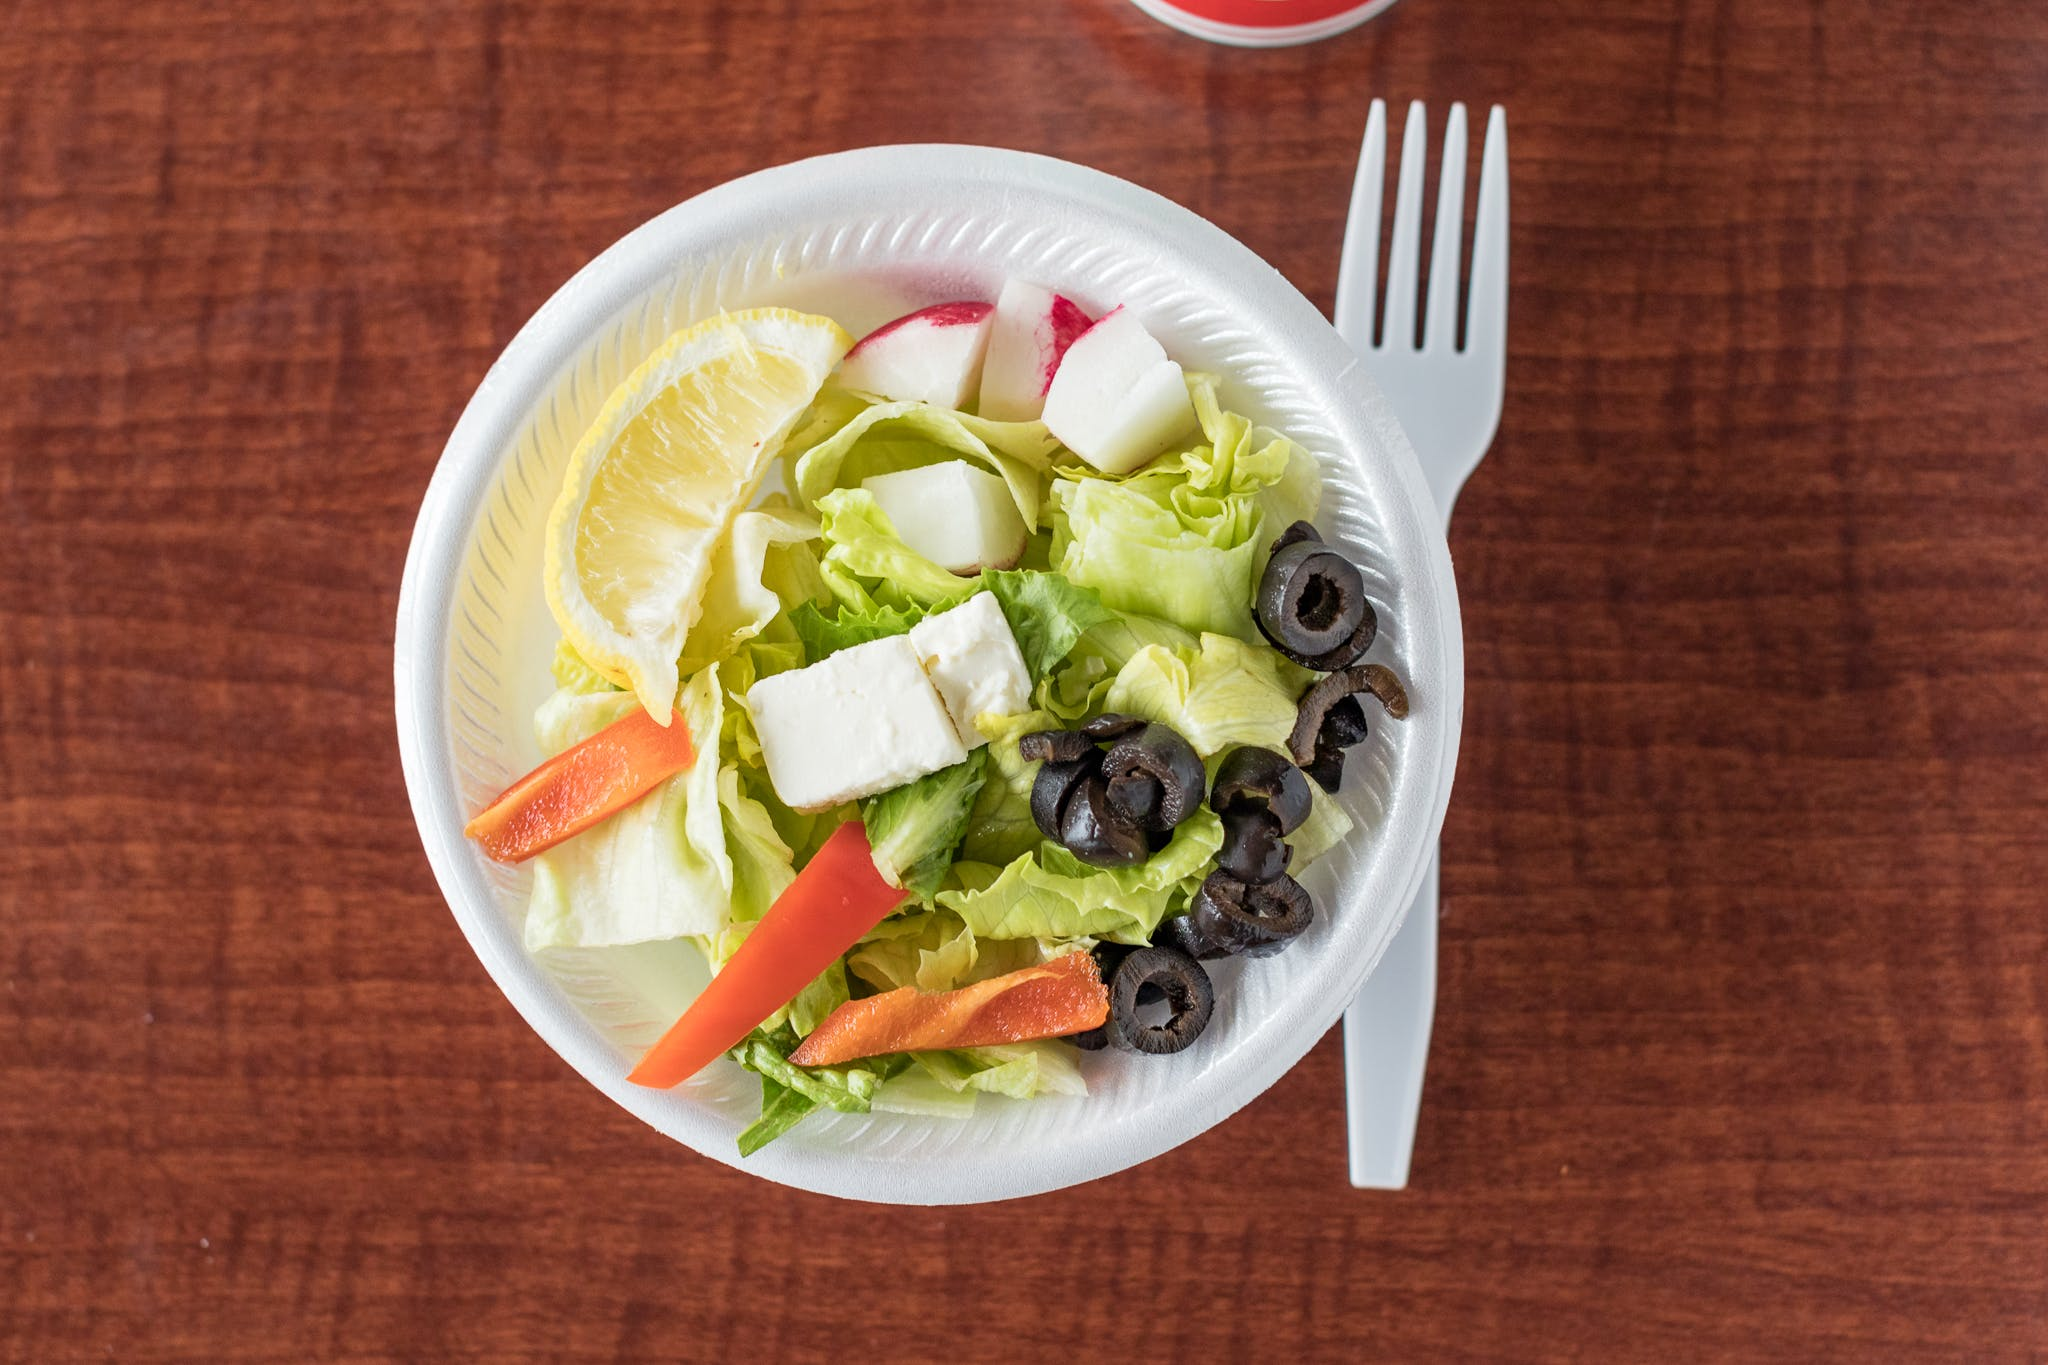 Large Salad from Johnny's Pizza Shop in Eau Claire, WI